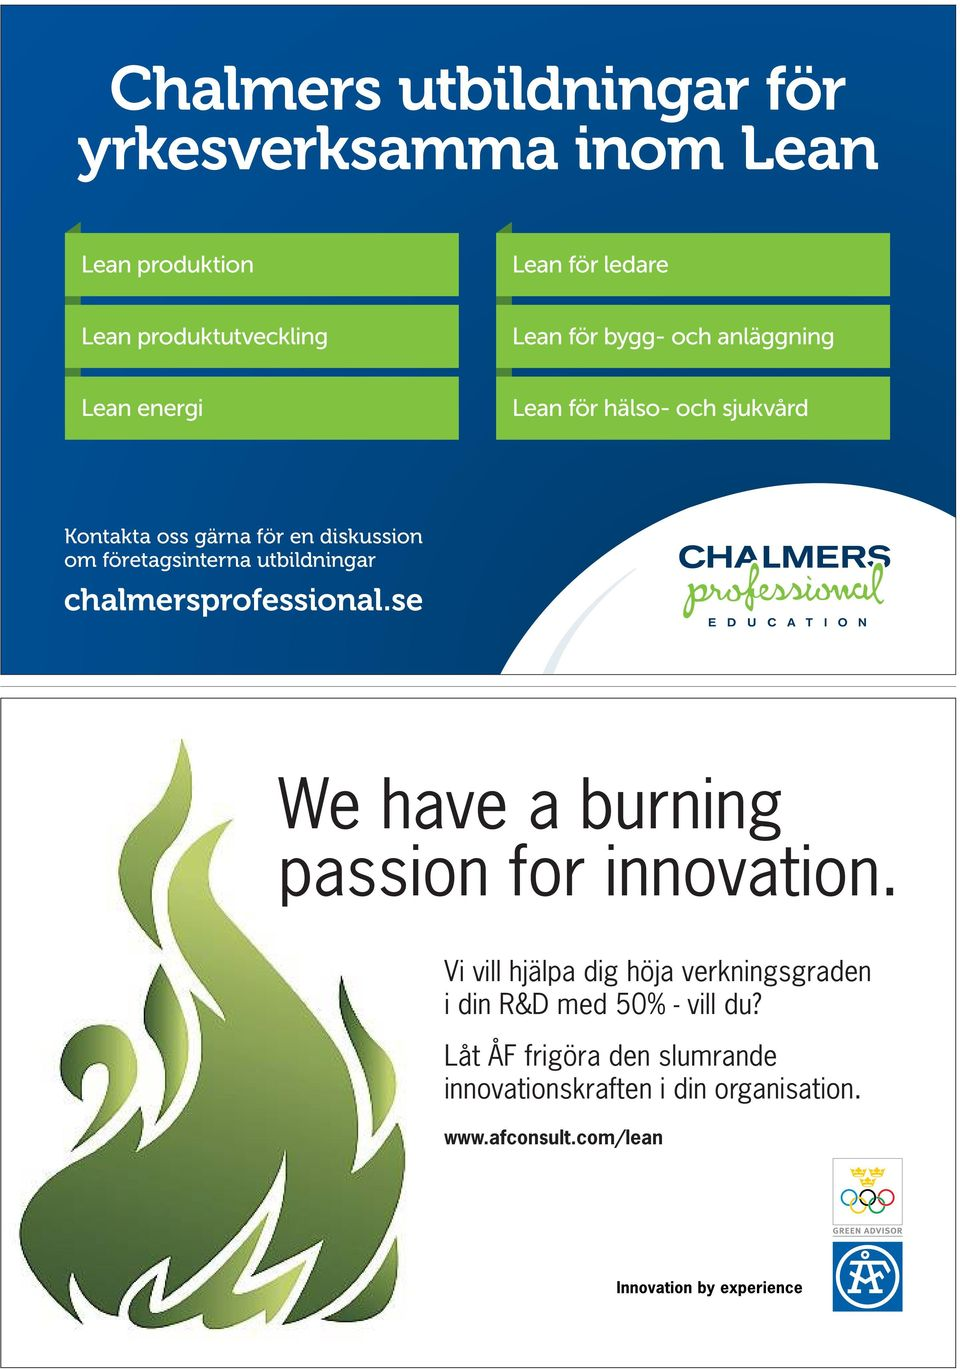 utbildningar chalmersprofessional.se We have a burning passion for innovation.